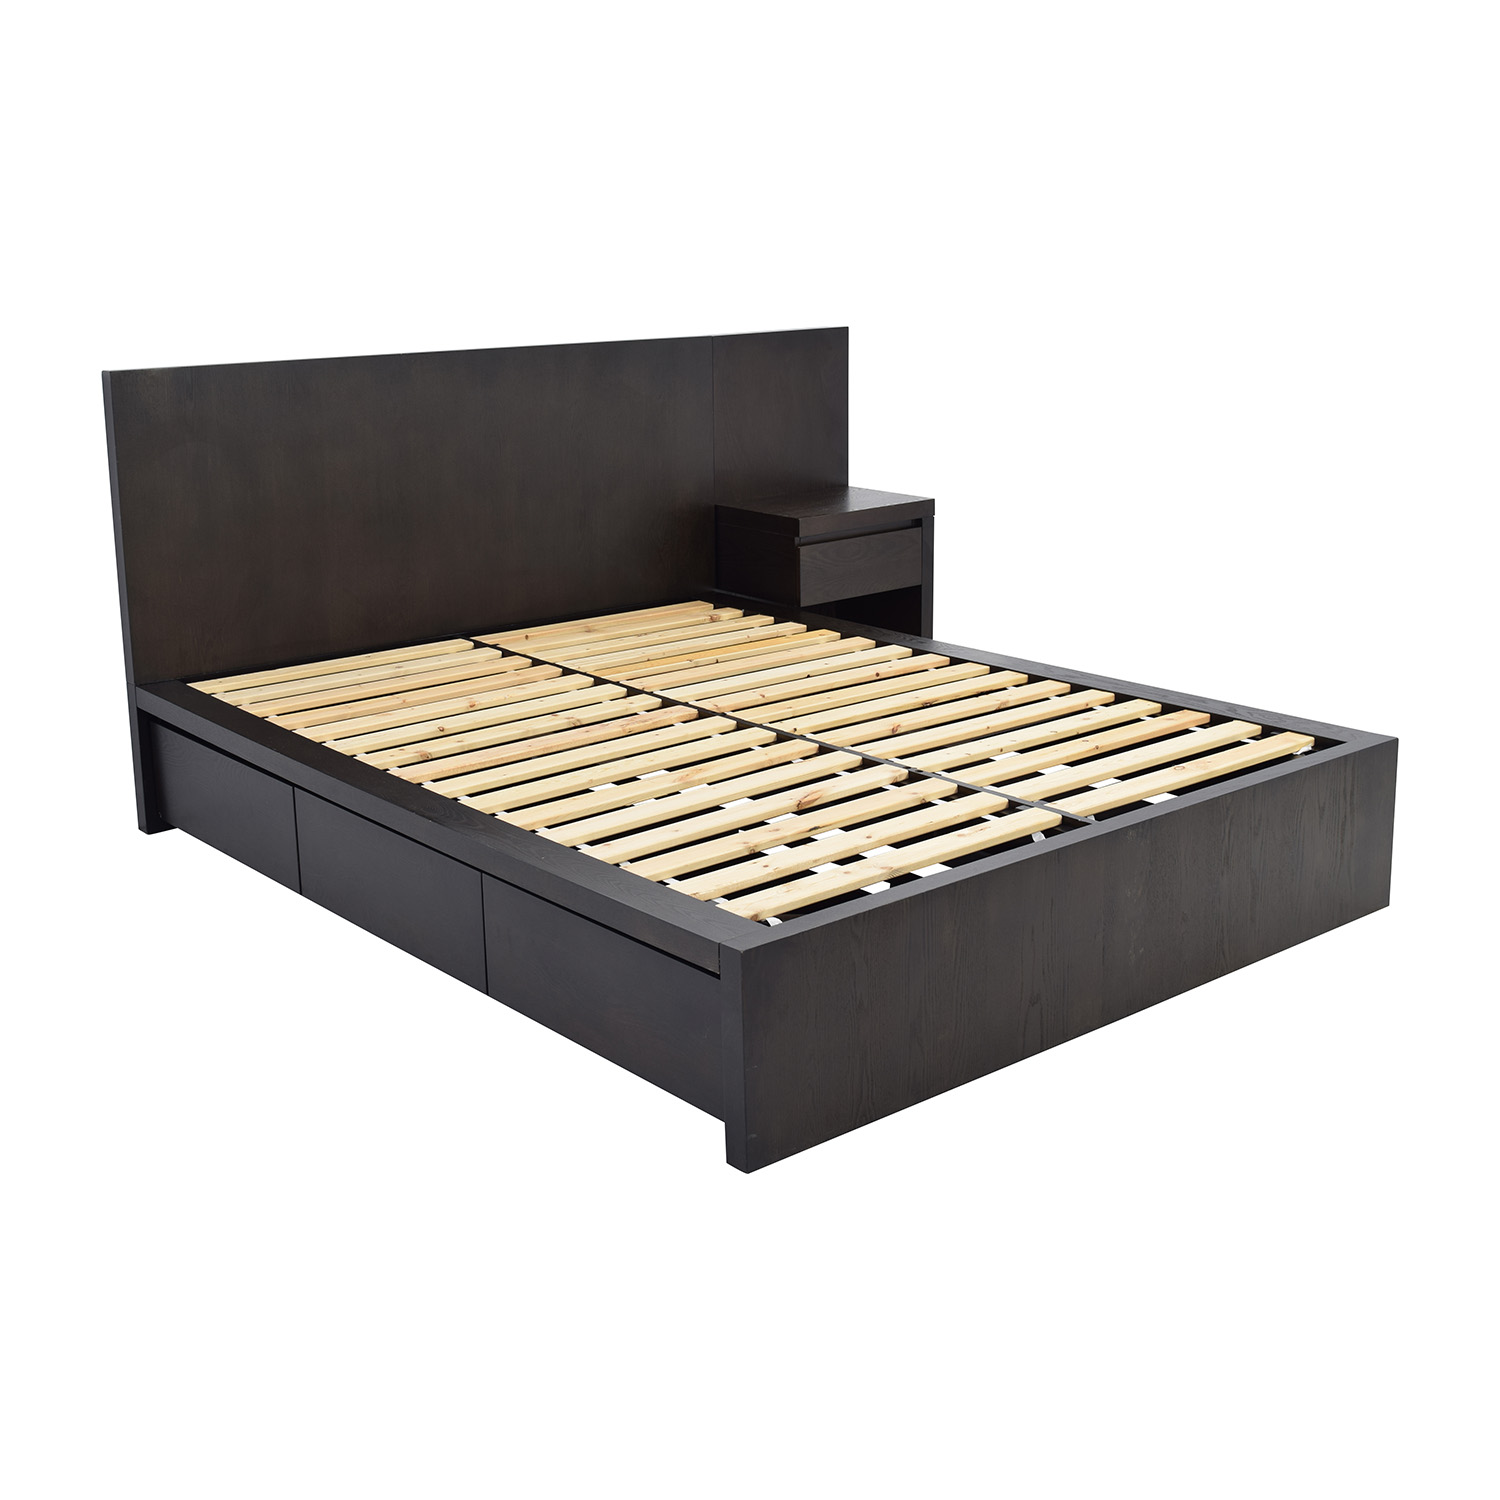 Storage Bed Frame Queen 54 Off West Elm West Elm Storage Queen Platform Bed And